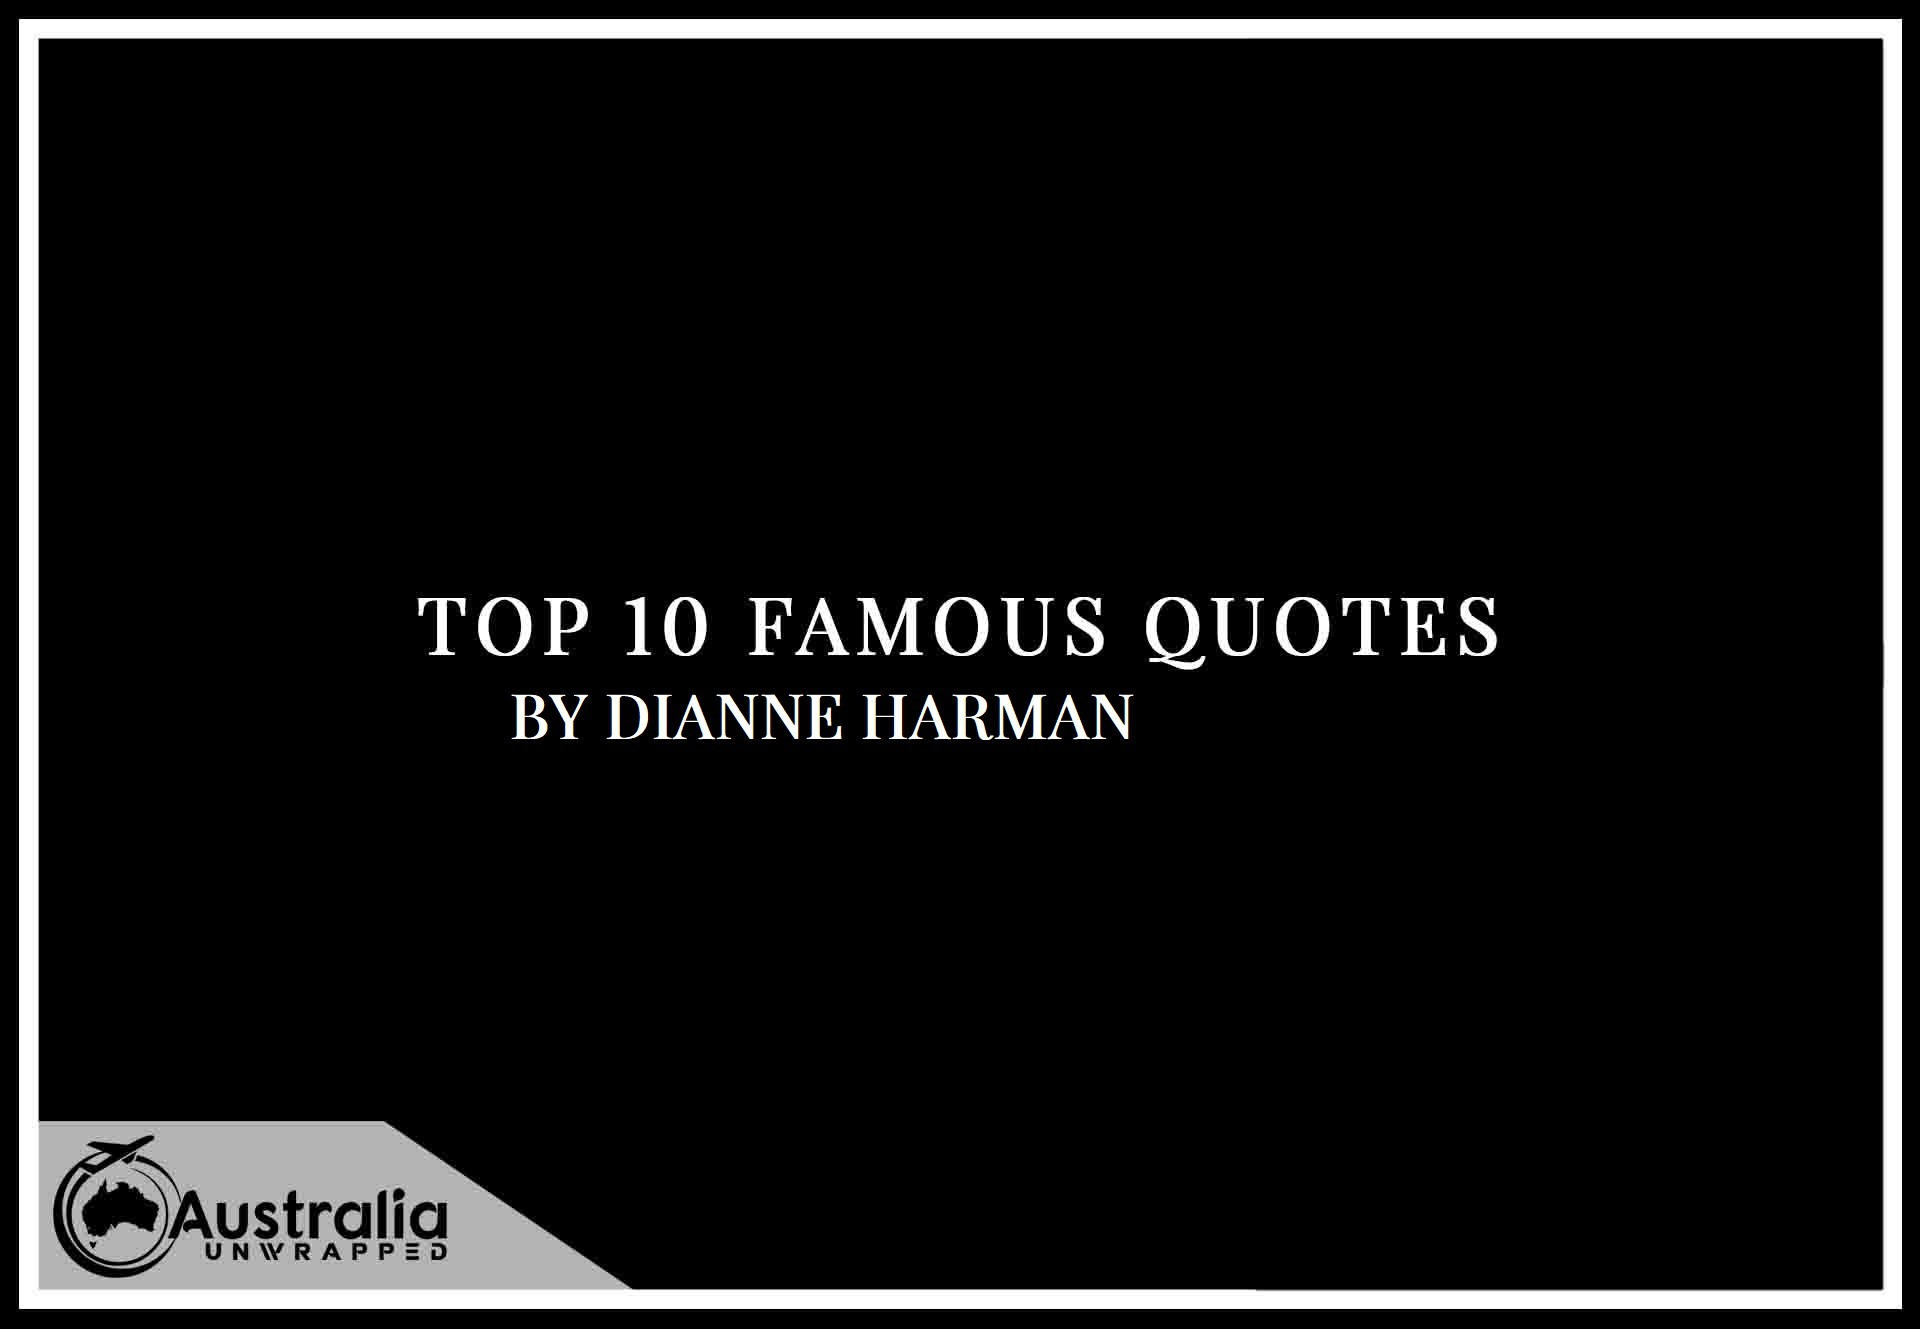 Top 10 Famous Quotes by Author Dianne Harman